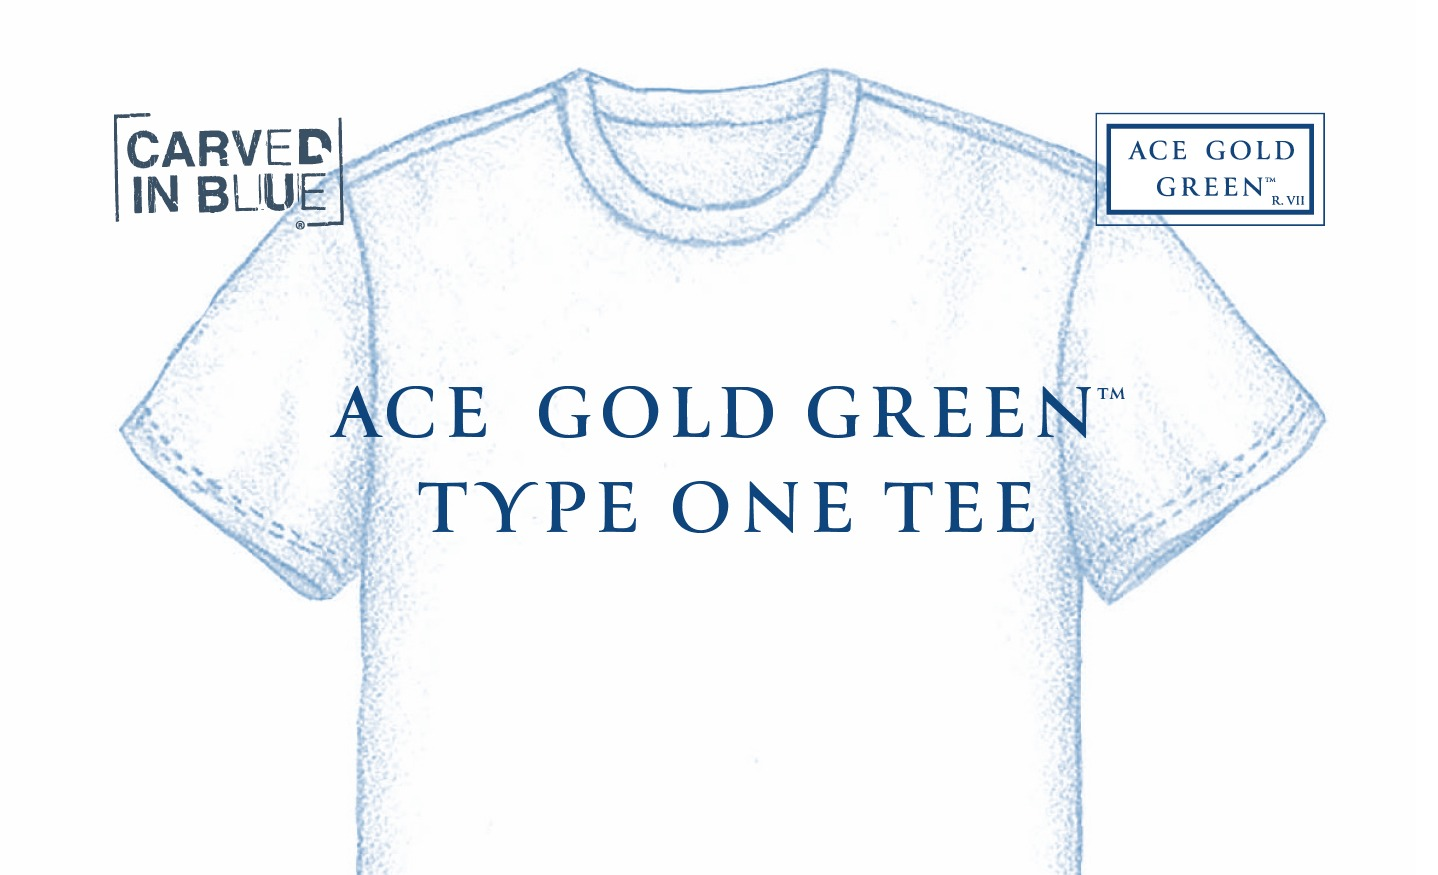 Ace Gold Green